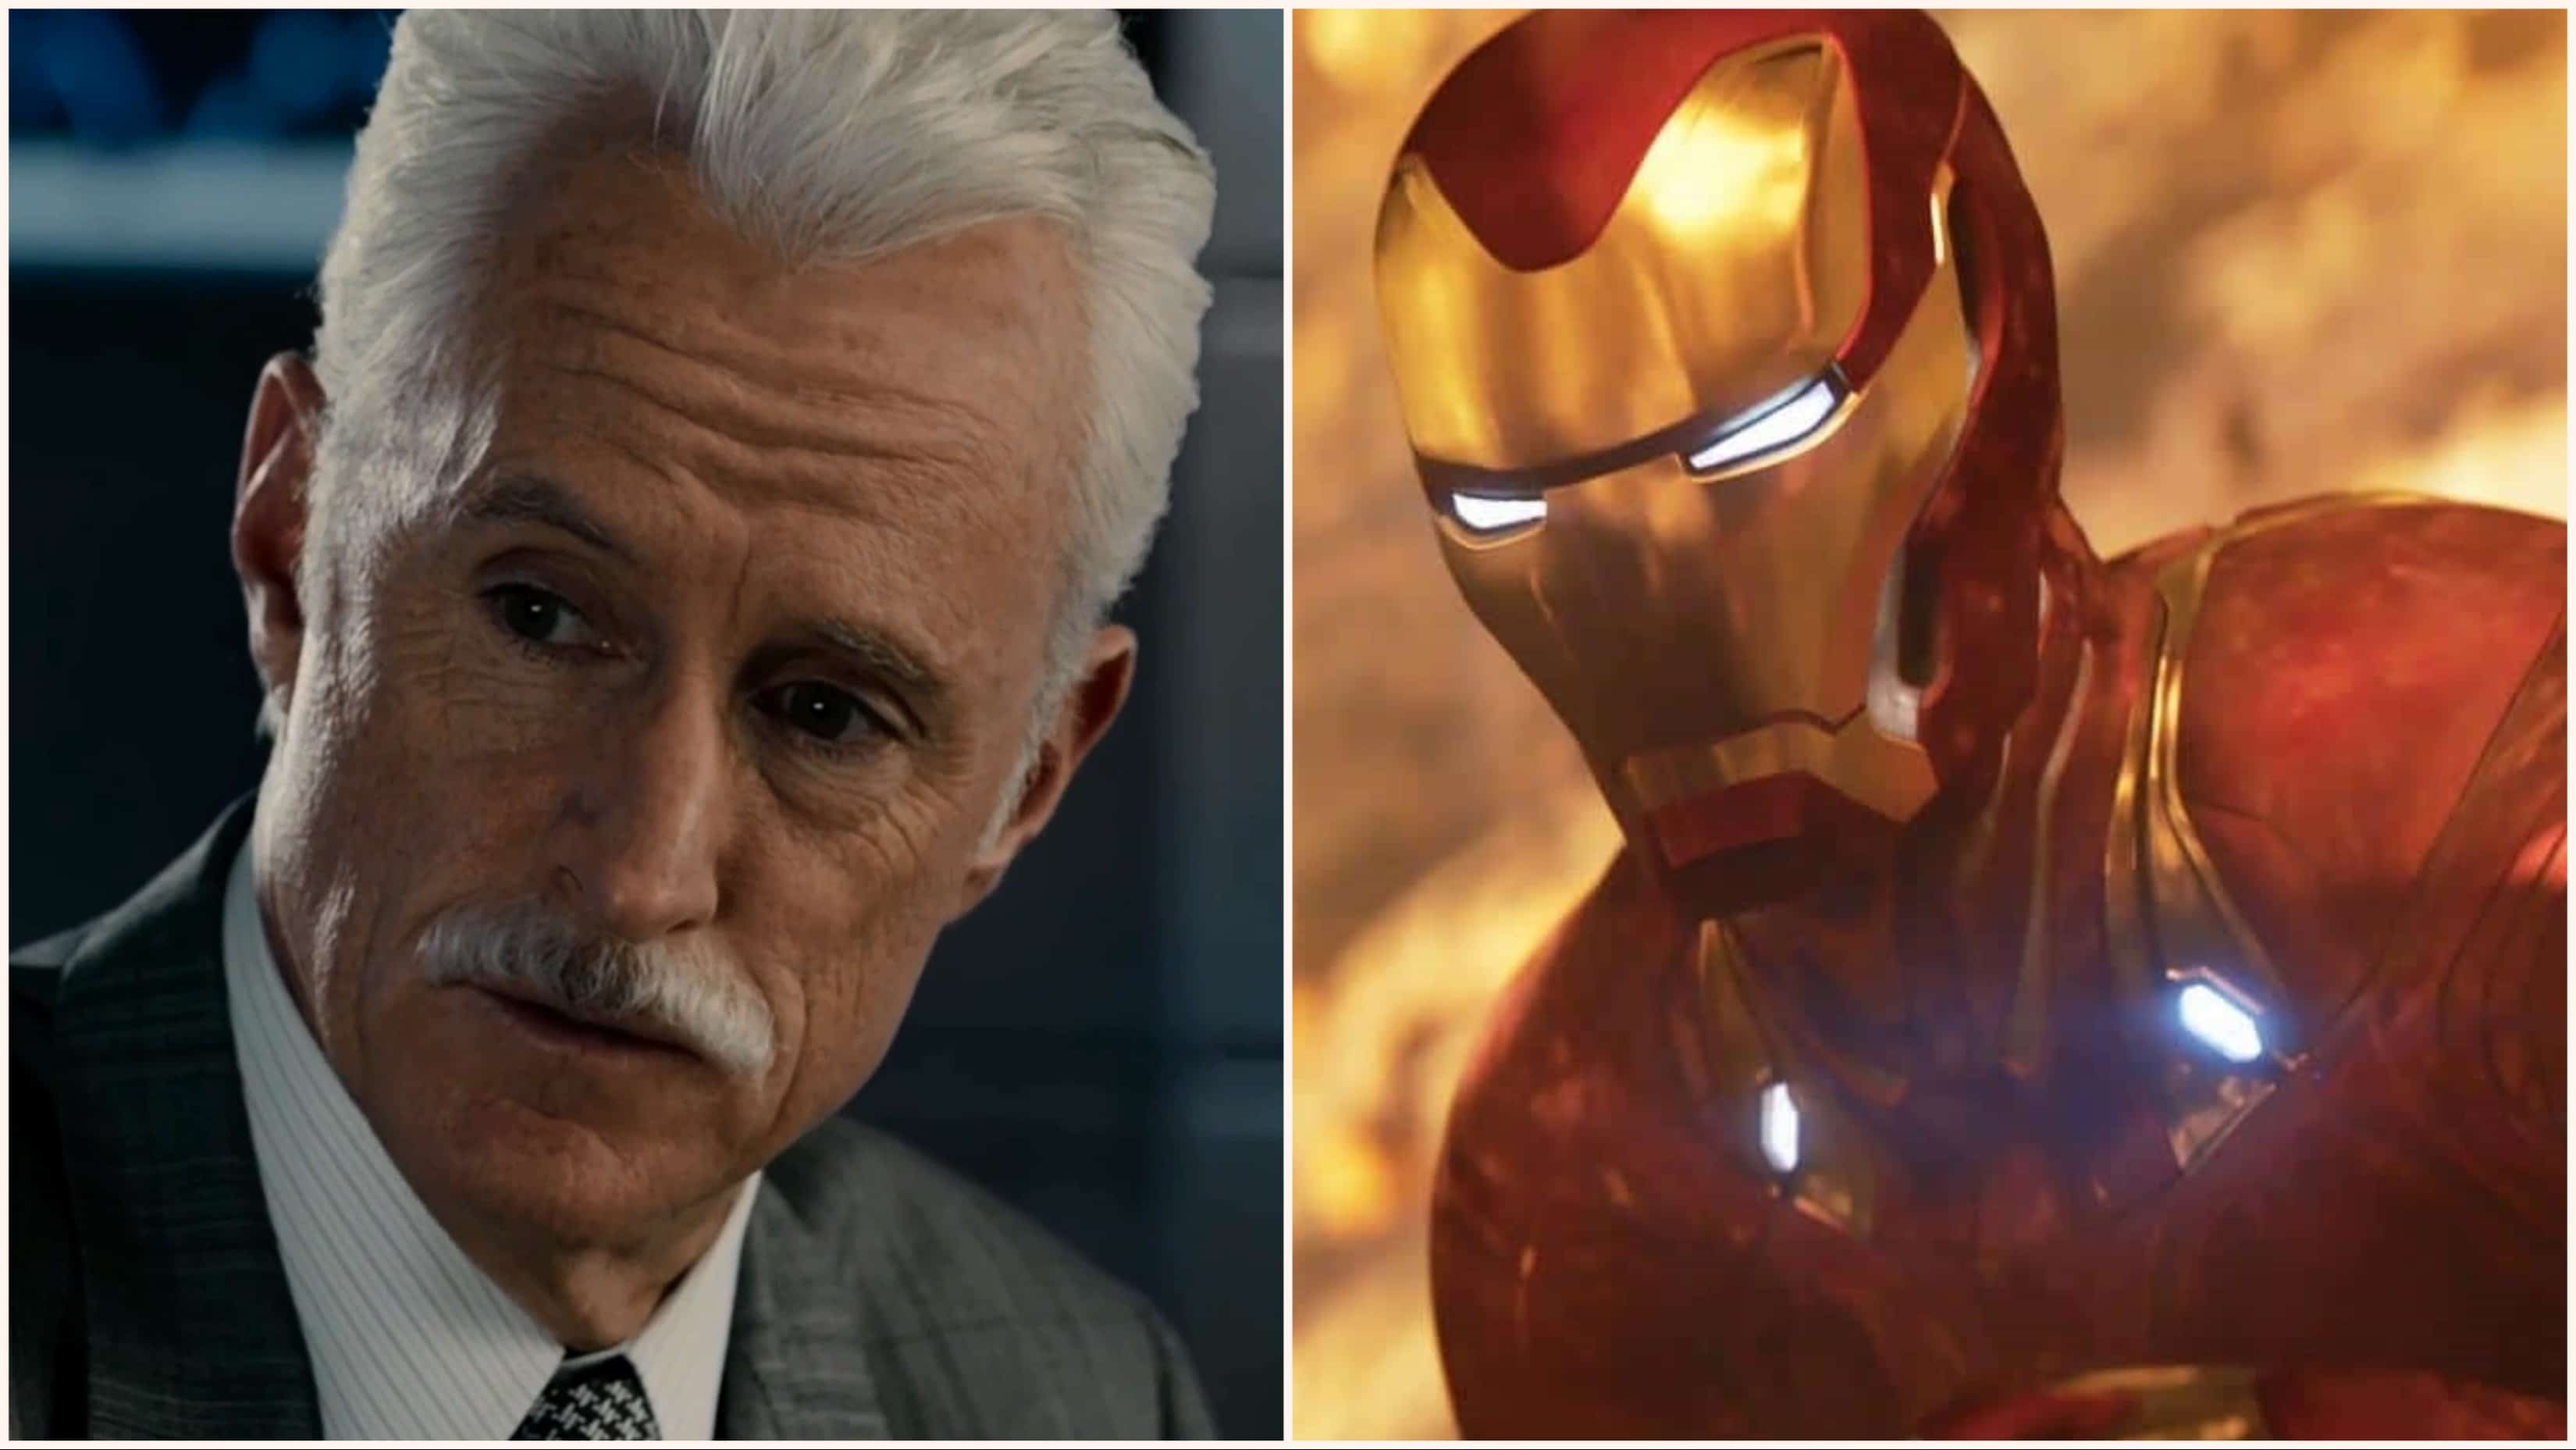 John Slattery, who has played Howard in previous Marvel Studios movies, has reportedly been spotted on set with Robert Downey Jr during Avengers 4 reshoots.